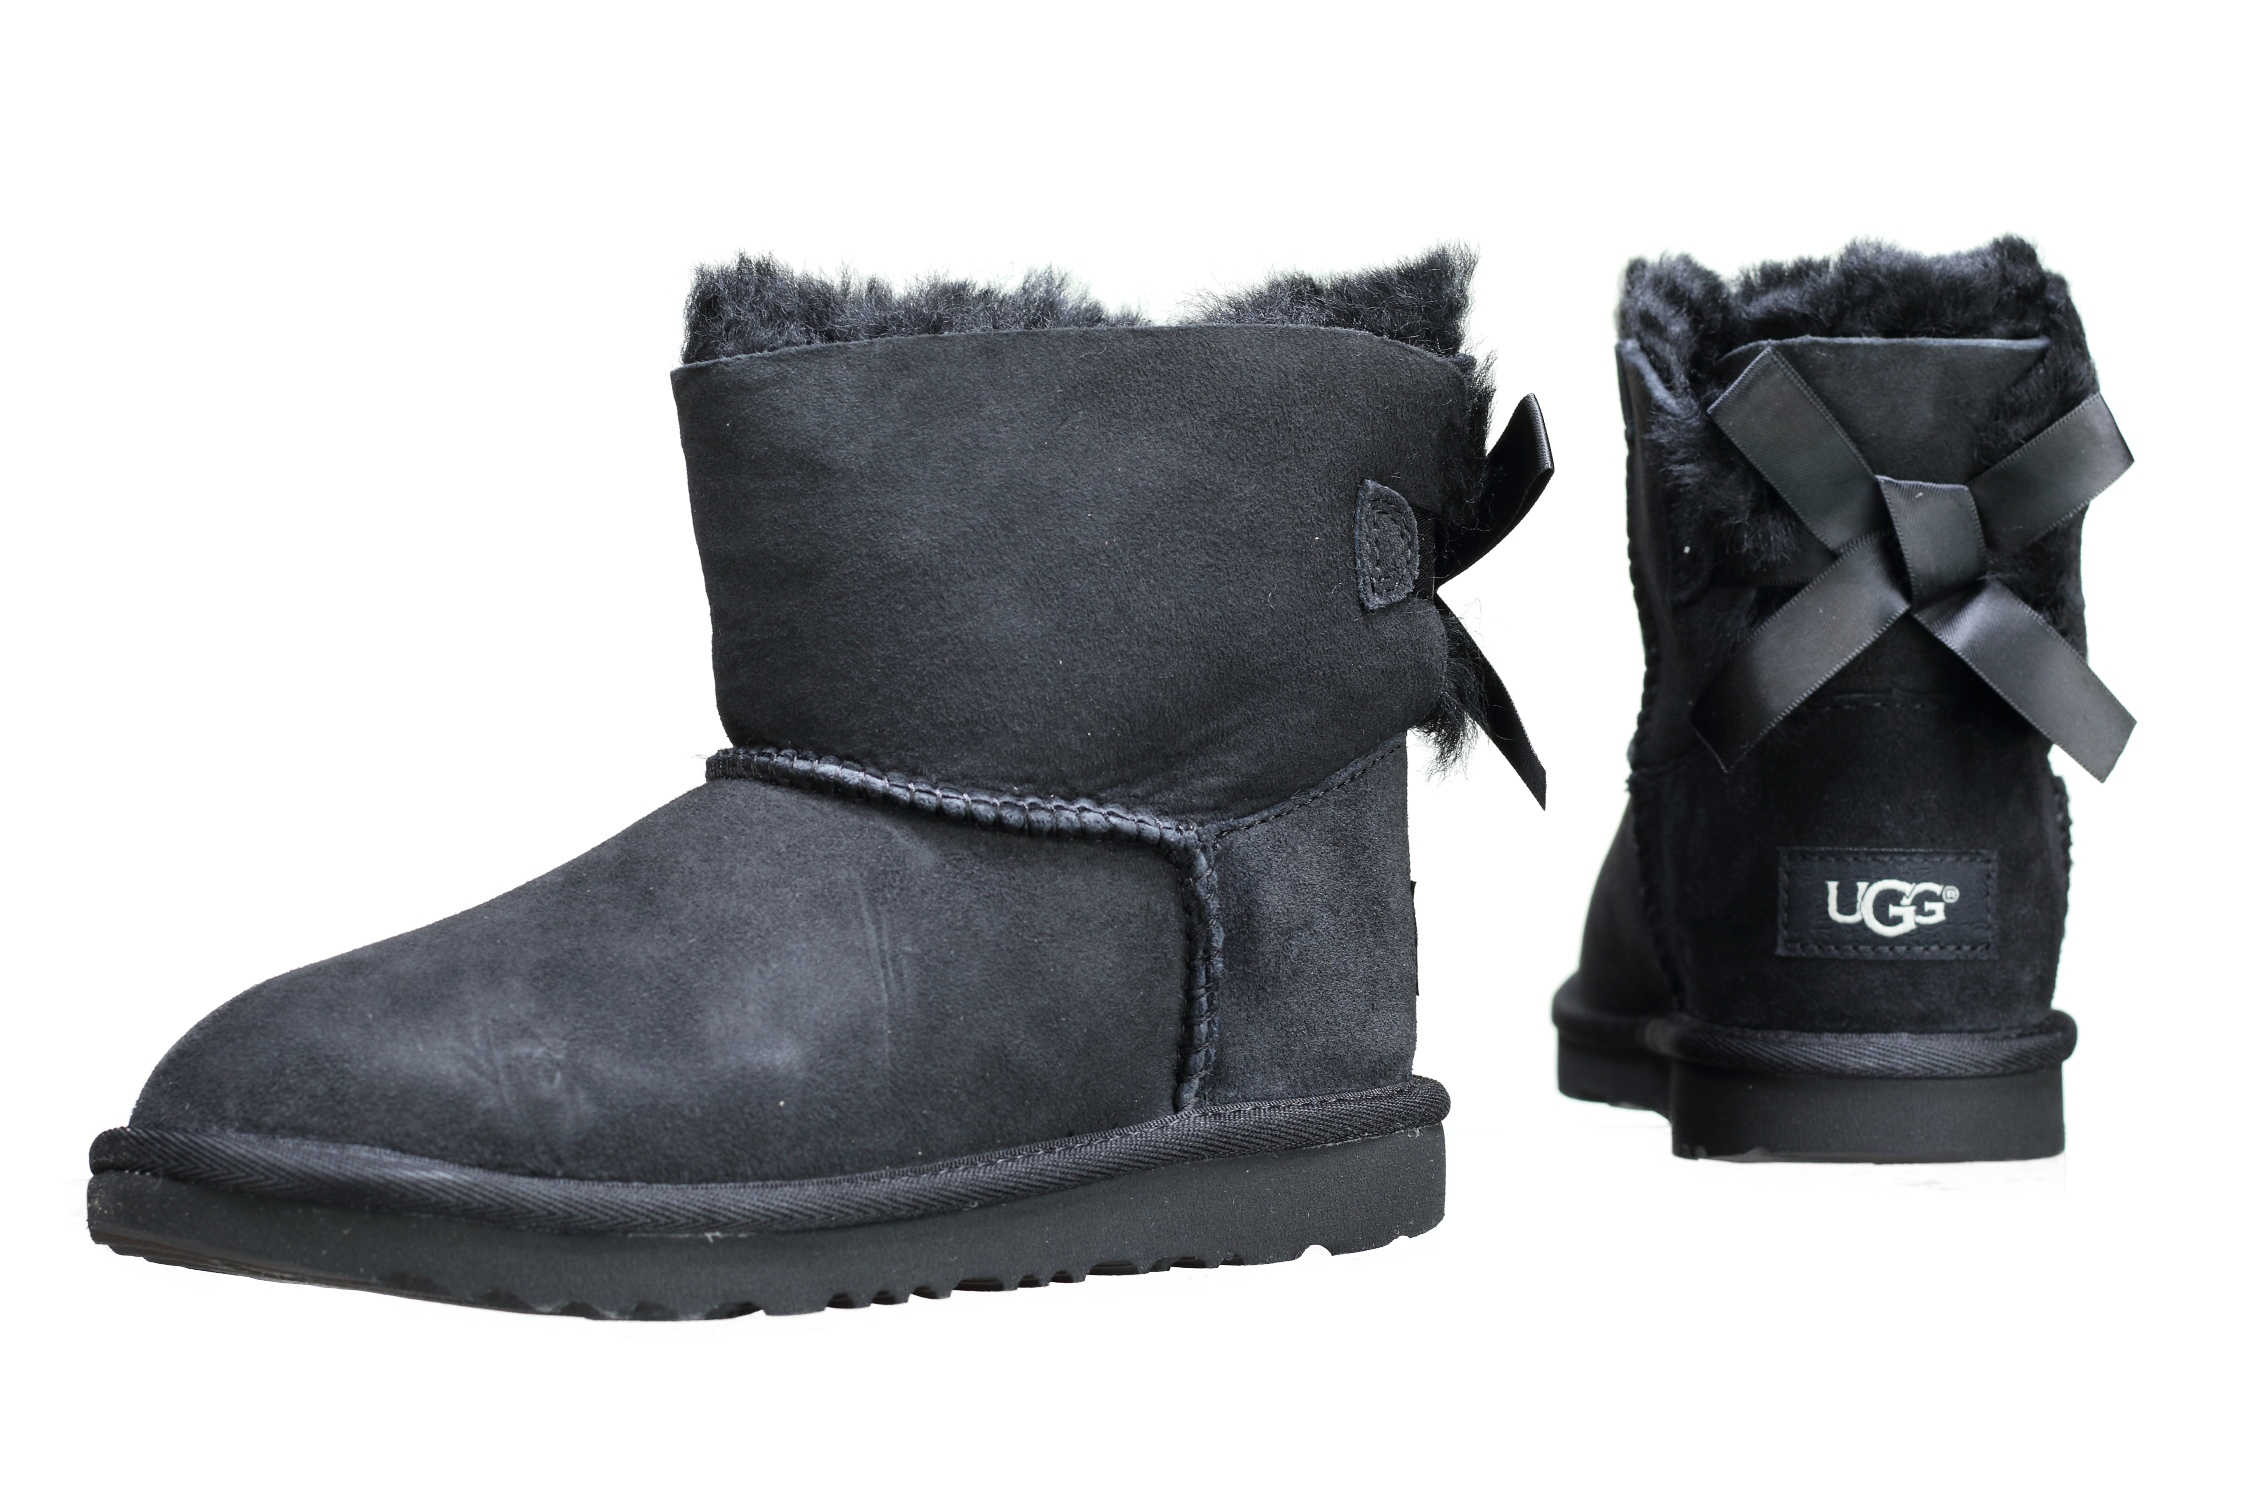 http://www.leadermode.com/135412/ugg-k-mini-bailey-bow-2-1017397-k-black.jpg